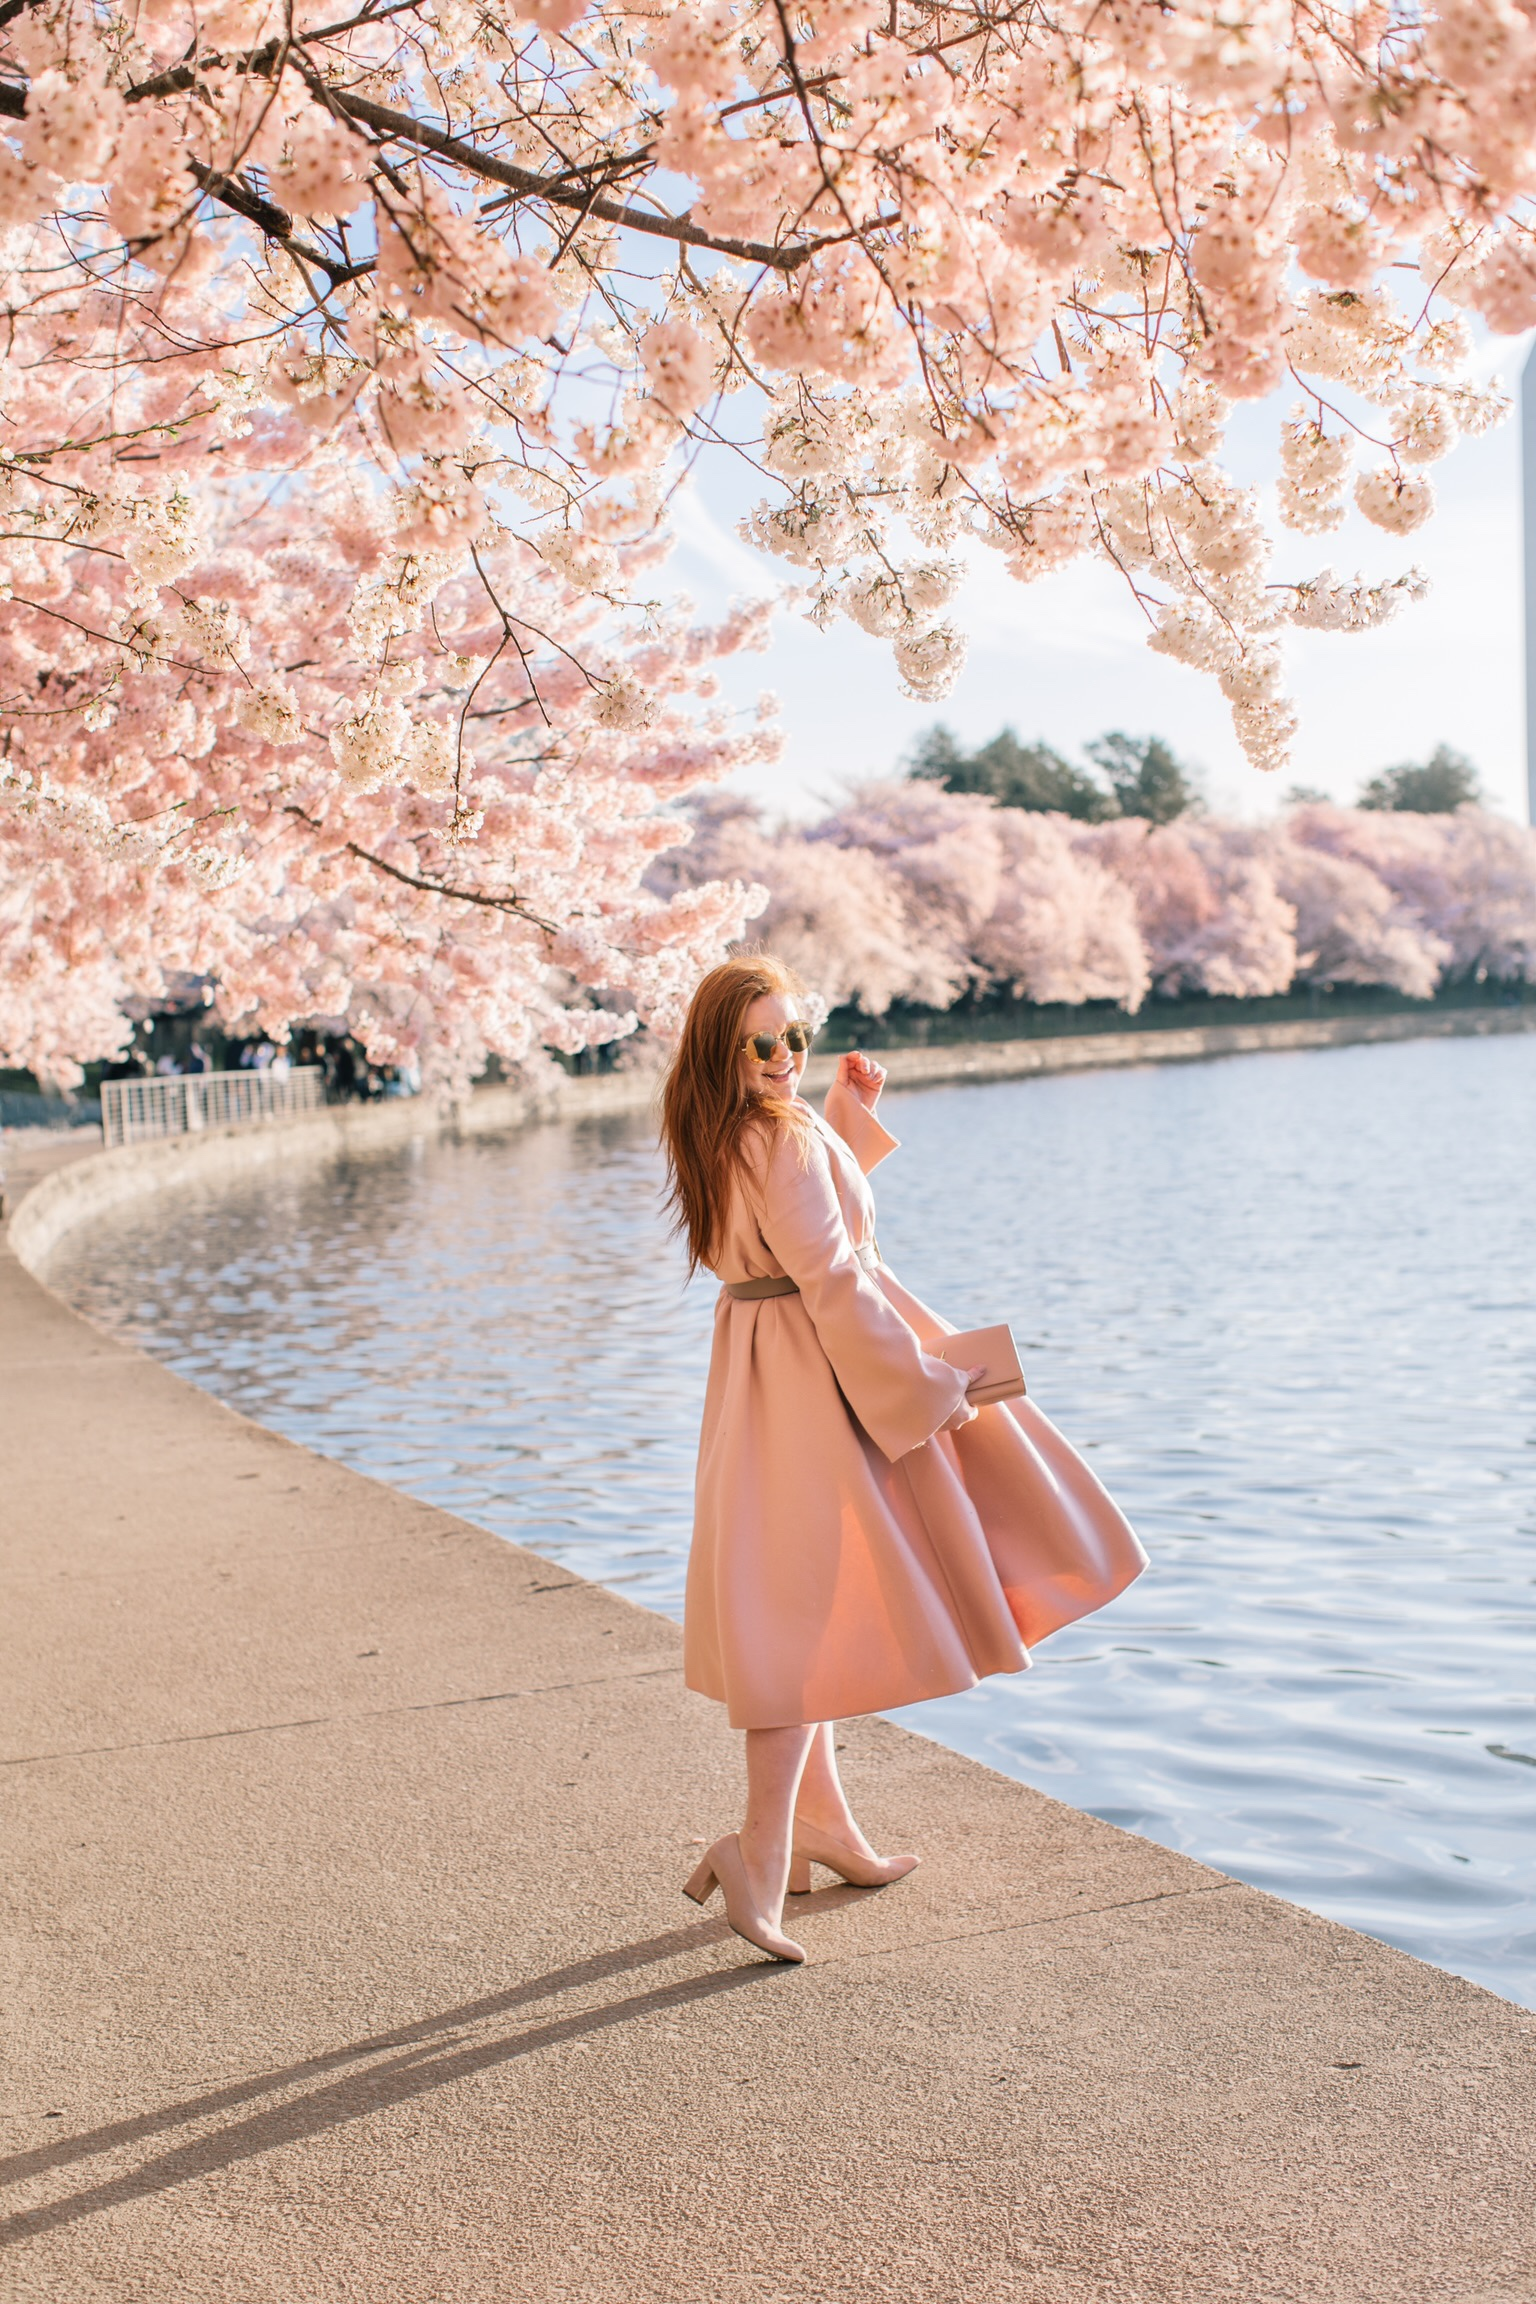 dc_cherry_blossoms-5.JPG